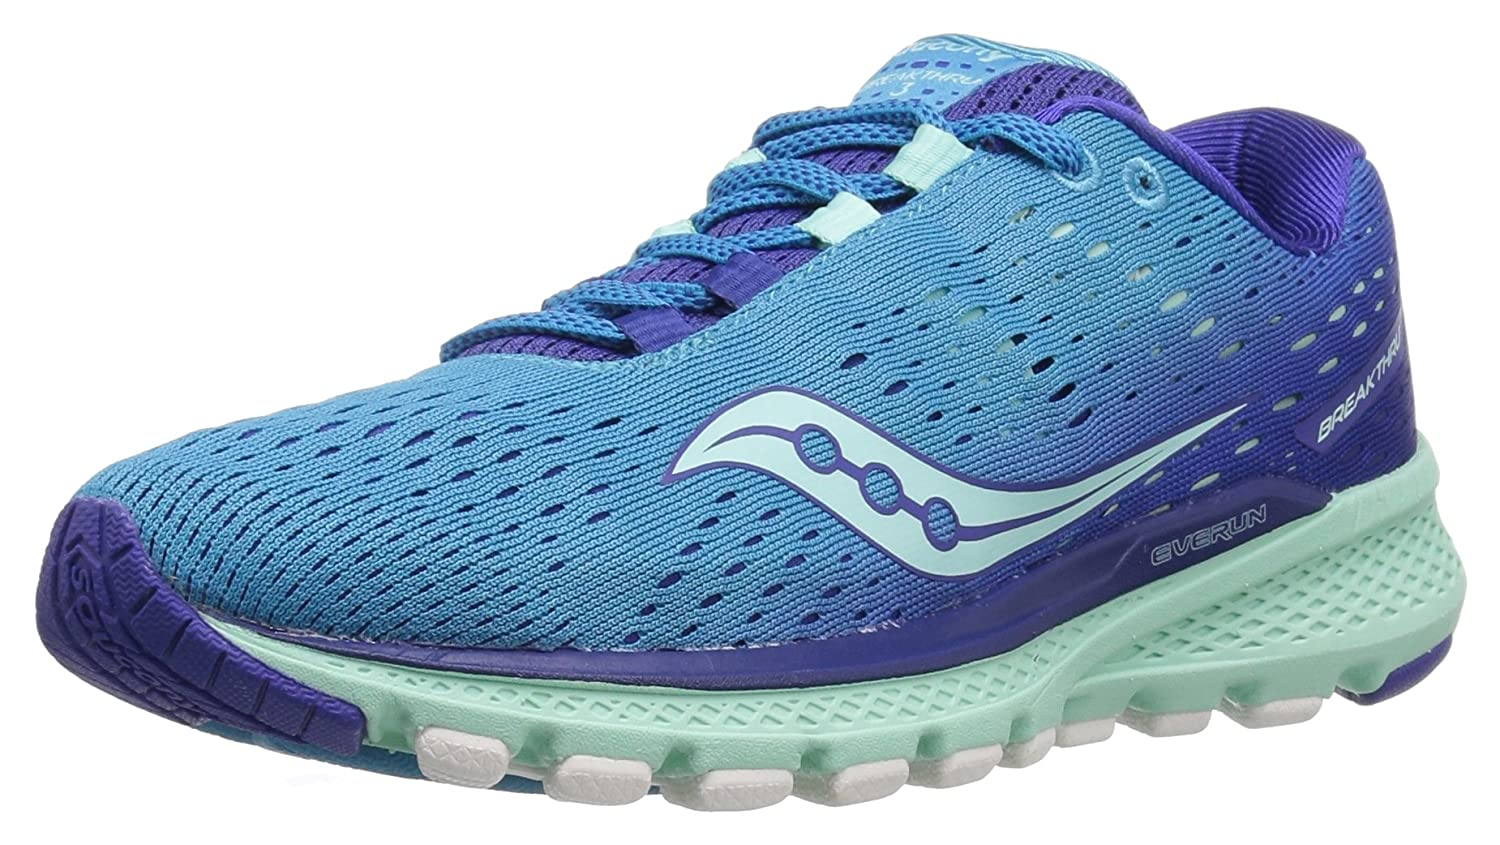 Saucony Women's Breakthru 3 Running Shoe B01N10GLPD 09.5 M US|Blue/Mint